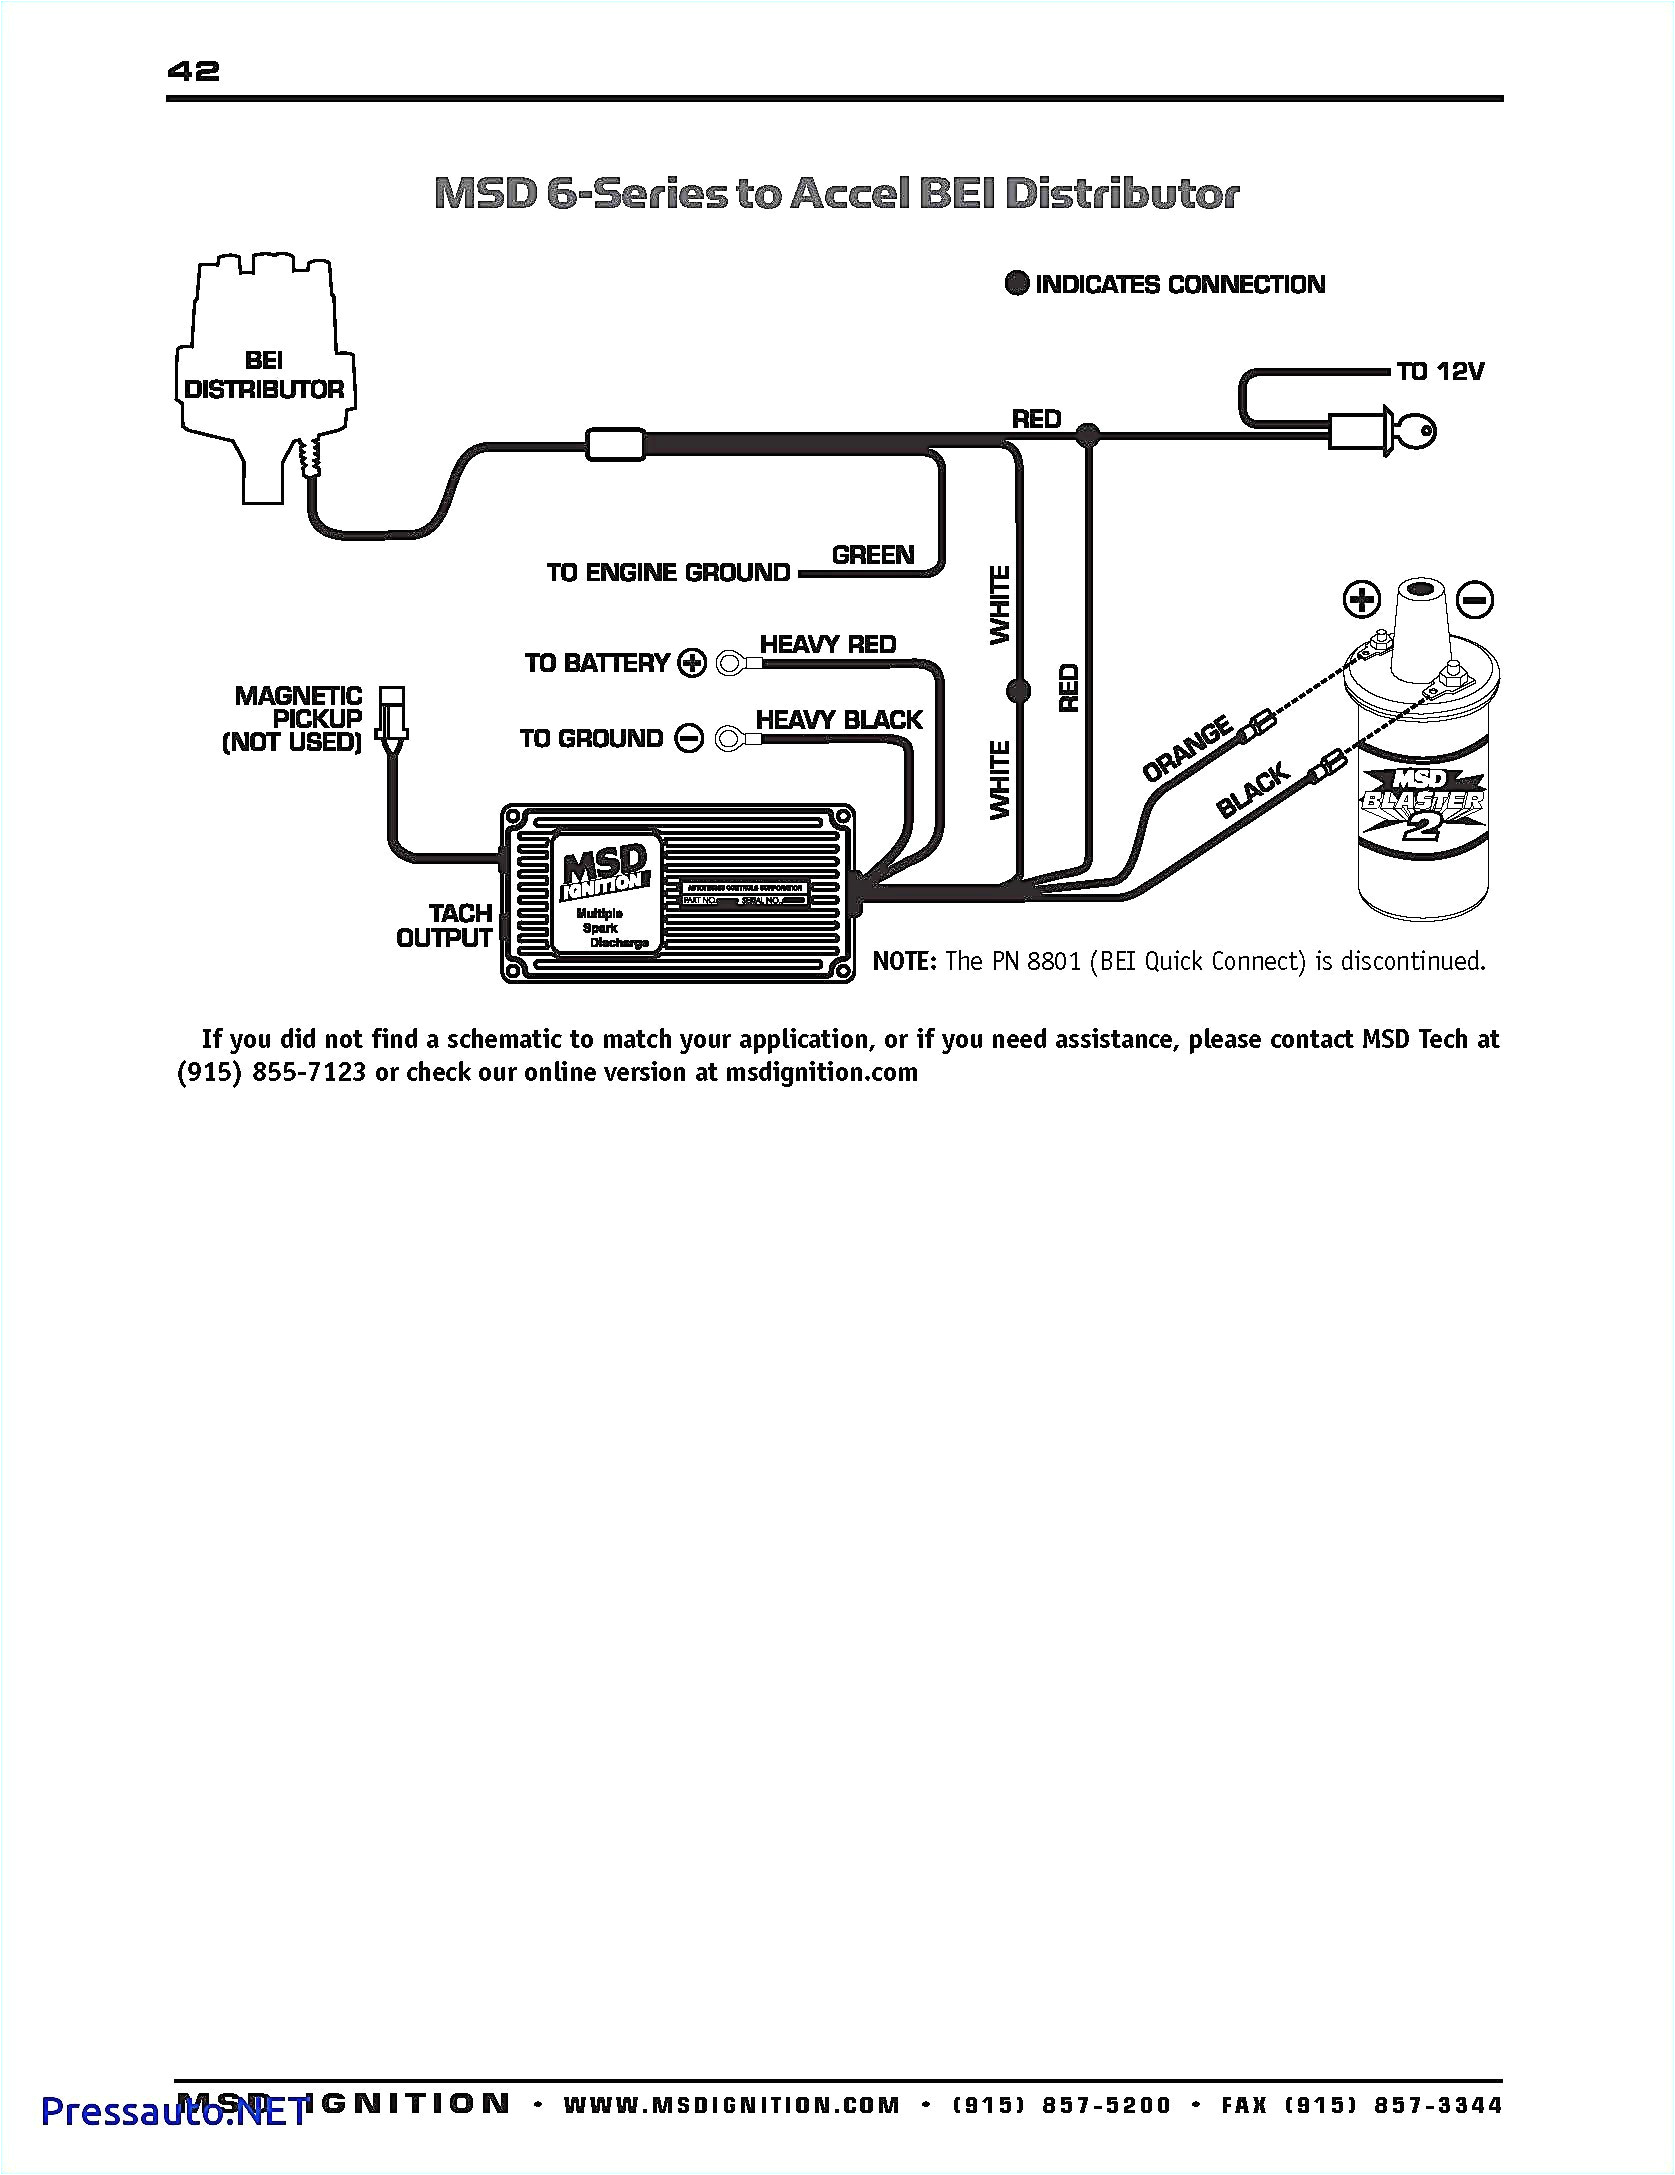 mallory ignition tach wiring diagram wiring diagram sample mallory ignition tach wiring diagram wiring diagram expert